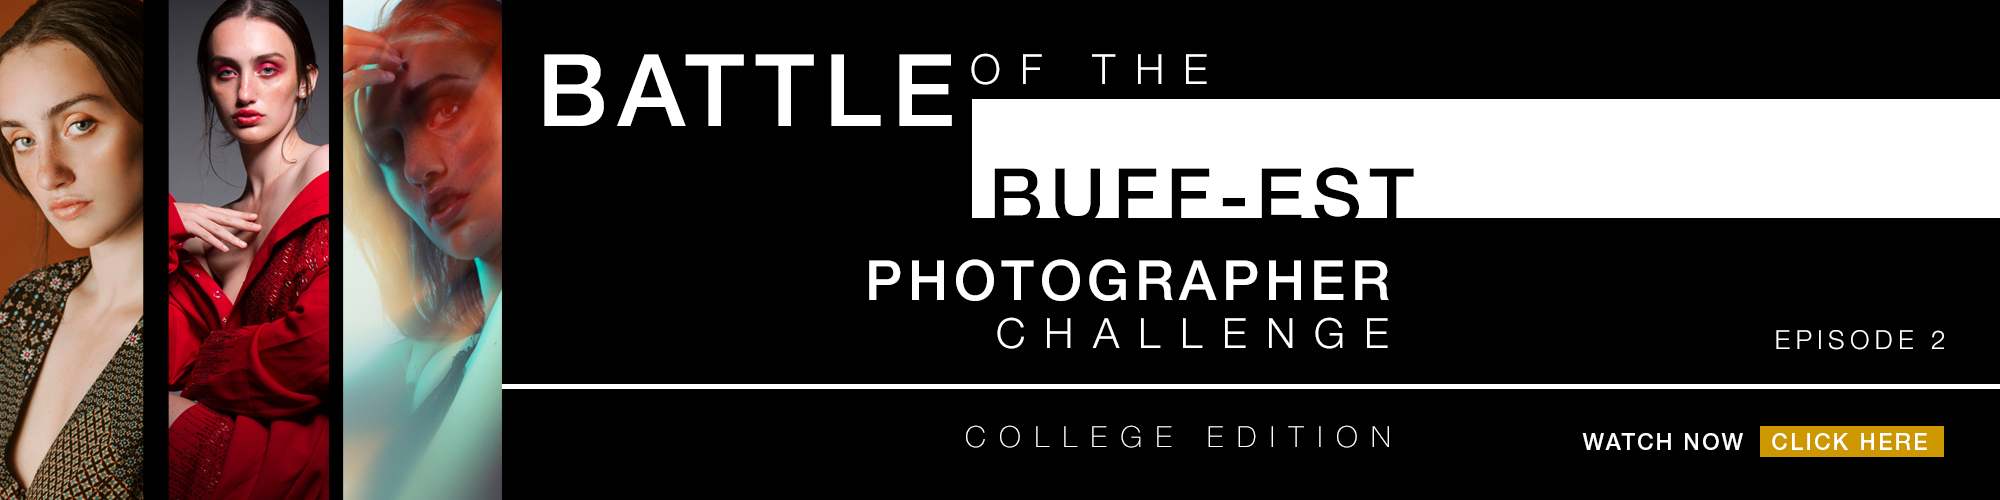 Paul C. Buff, Inc.'s Battle of the BUFF-est Episode 2: College Edition features three college photographers and a unique challenge.